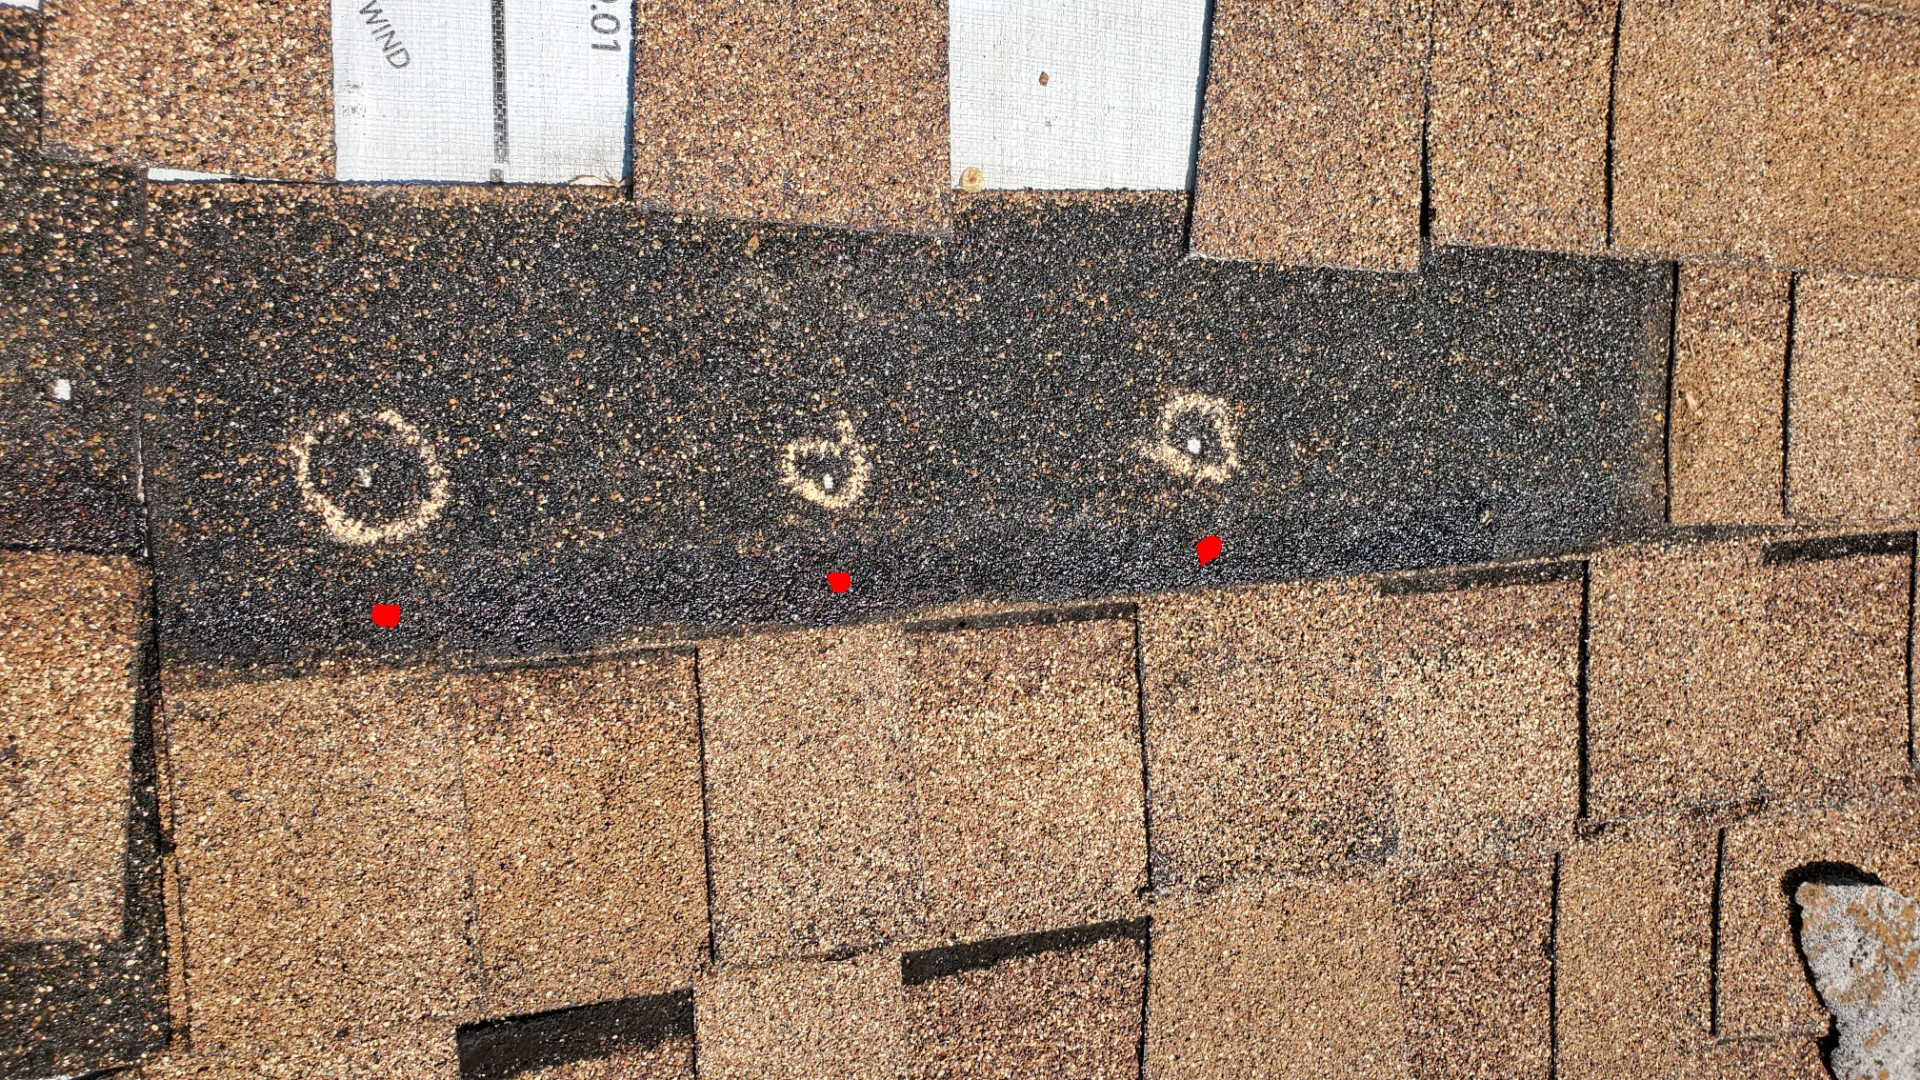 In this picture there are circles Drawn on a shingle showing where the nail holes are at.